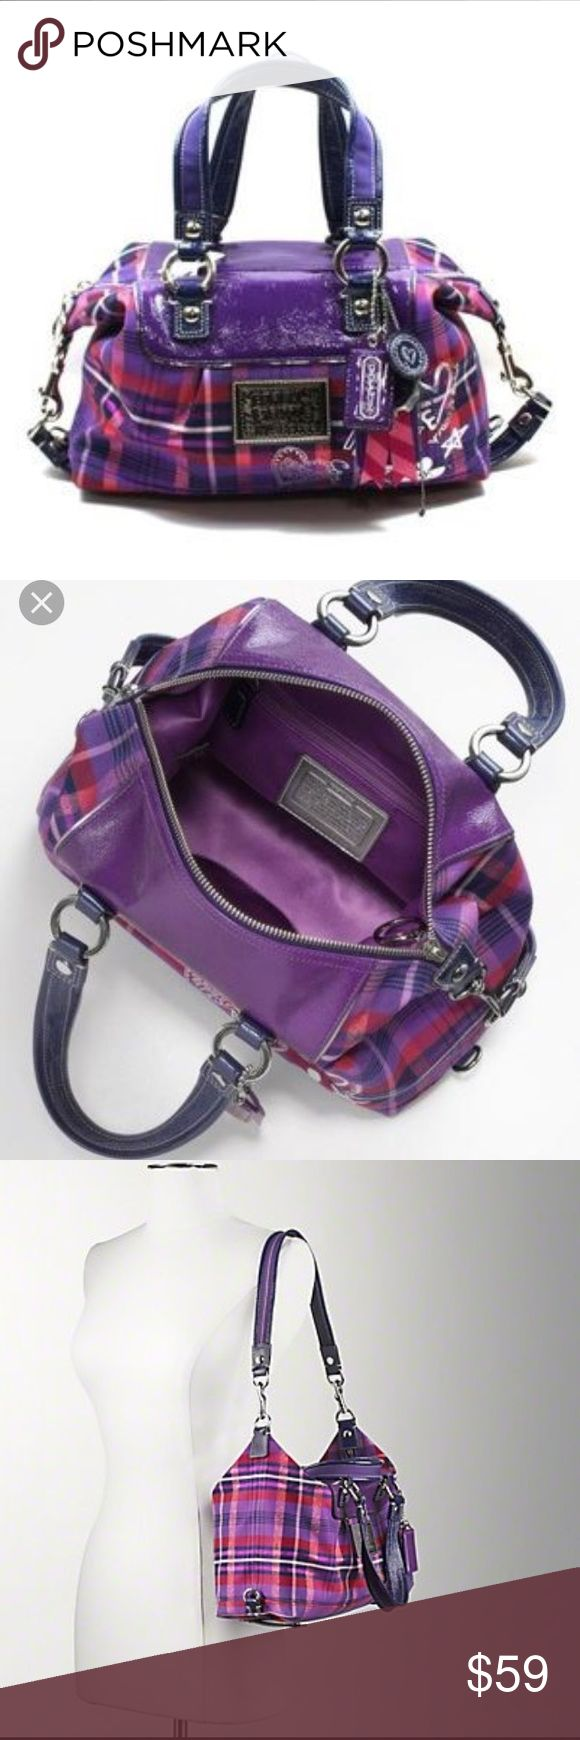 Coach Poppy Luxey Tartan 2 Way Satchel Bag Coach Poppy Luxey Purple Tartan Plaid 2 Way Satchel. Features a cloth like jacquard in purple tartan plaid with shiny patent leather trim, double handles and longer shoulder strap that will tuck on the bottom, Coach Poppy emblem, silver hardware, top zip closure,  3 Coach Hangtags. Interior features Coach Sateen Fabric in purple, one Zip Pocket and slip pocket. Coach creed patch, Authenticity number 15884, rare and sold out.  Great condition in and…